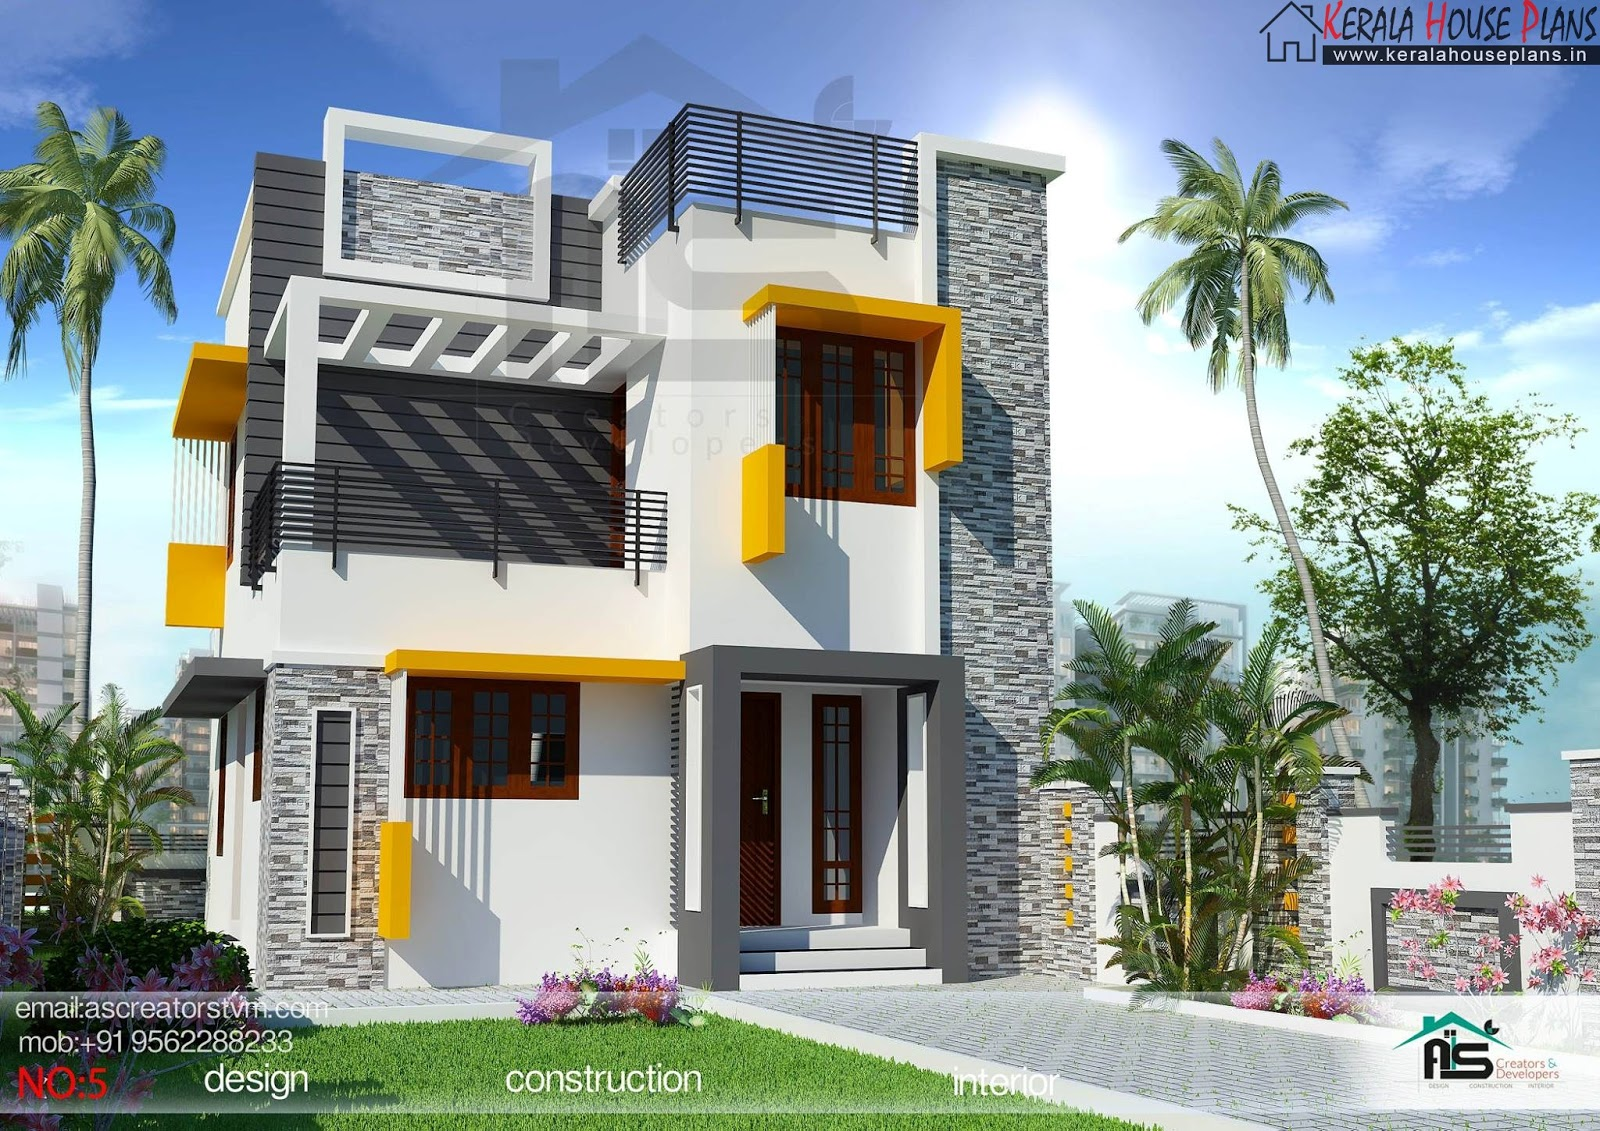 Three bedroom house plan kerala style kerala house plans for Kerala style 2 bedroom house plans